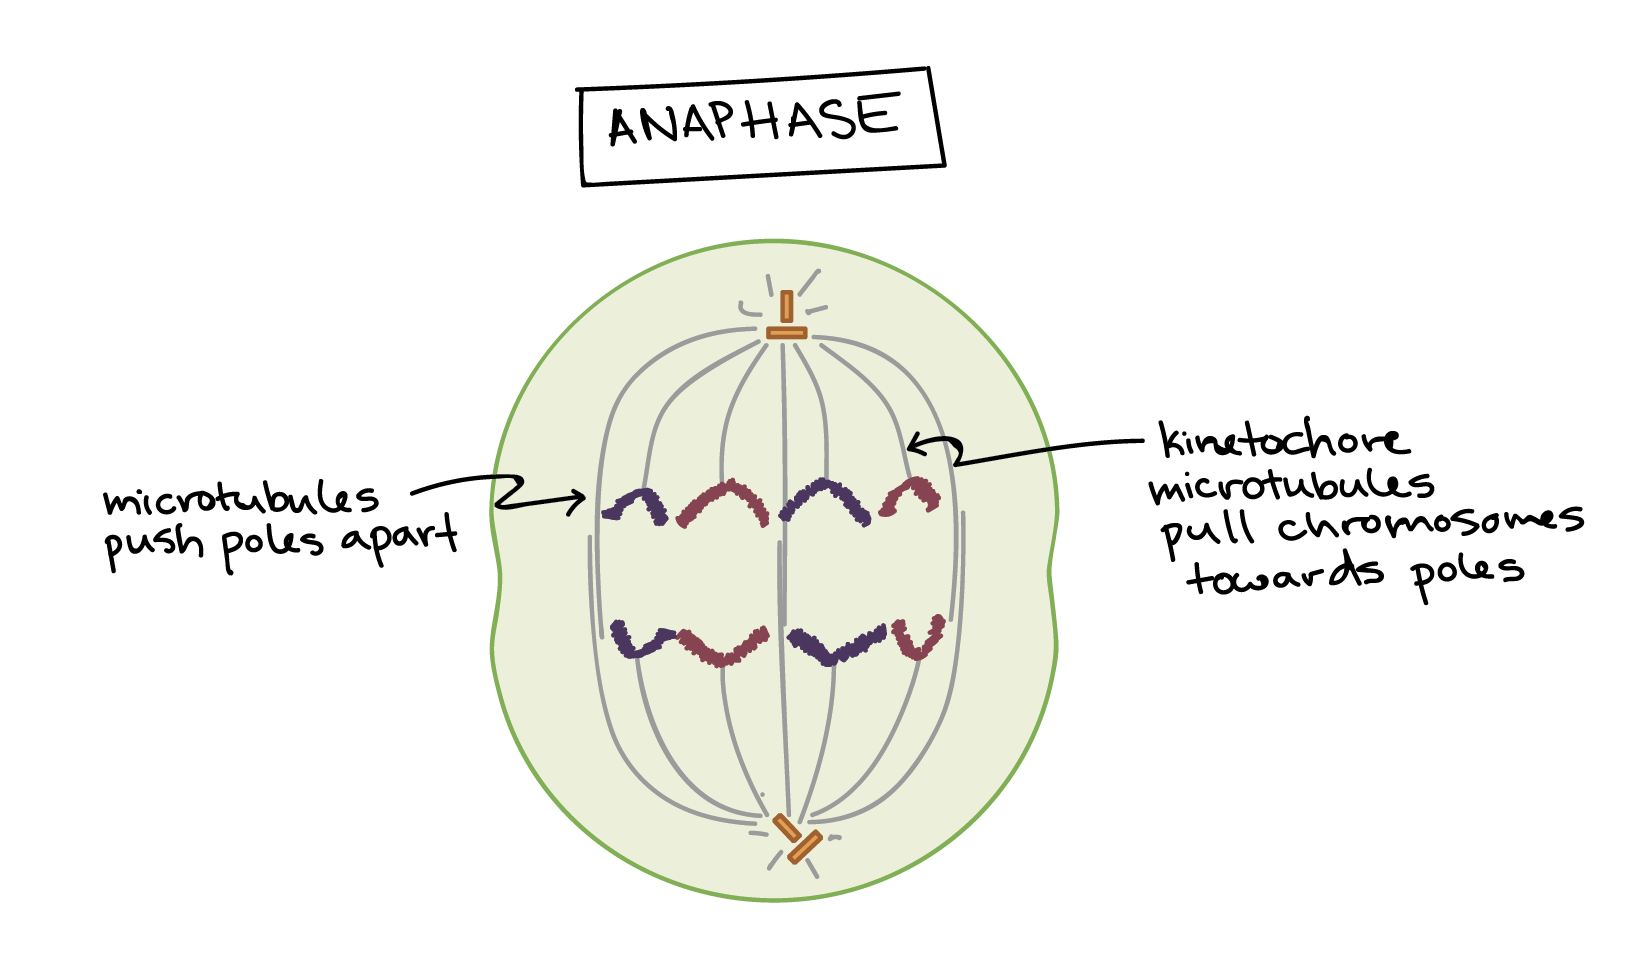 Mitosis Video The Cell Cycle And Khan Academy Prokaryotic Animal Diagram Labeled